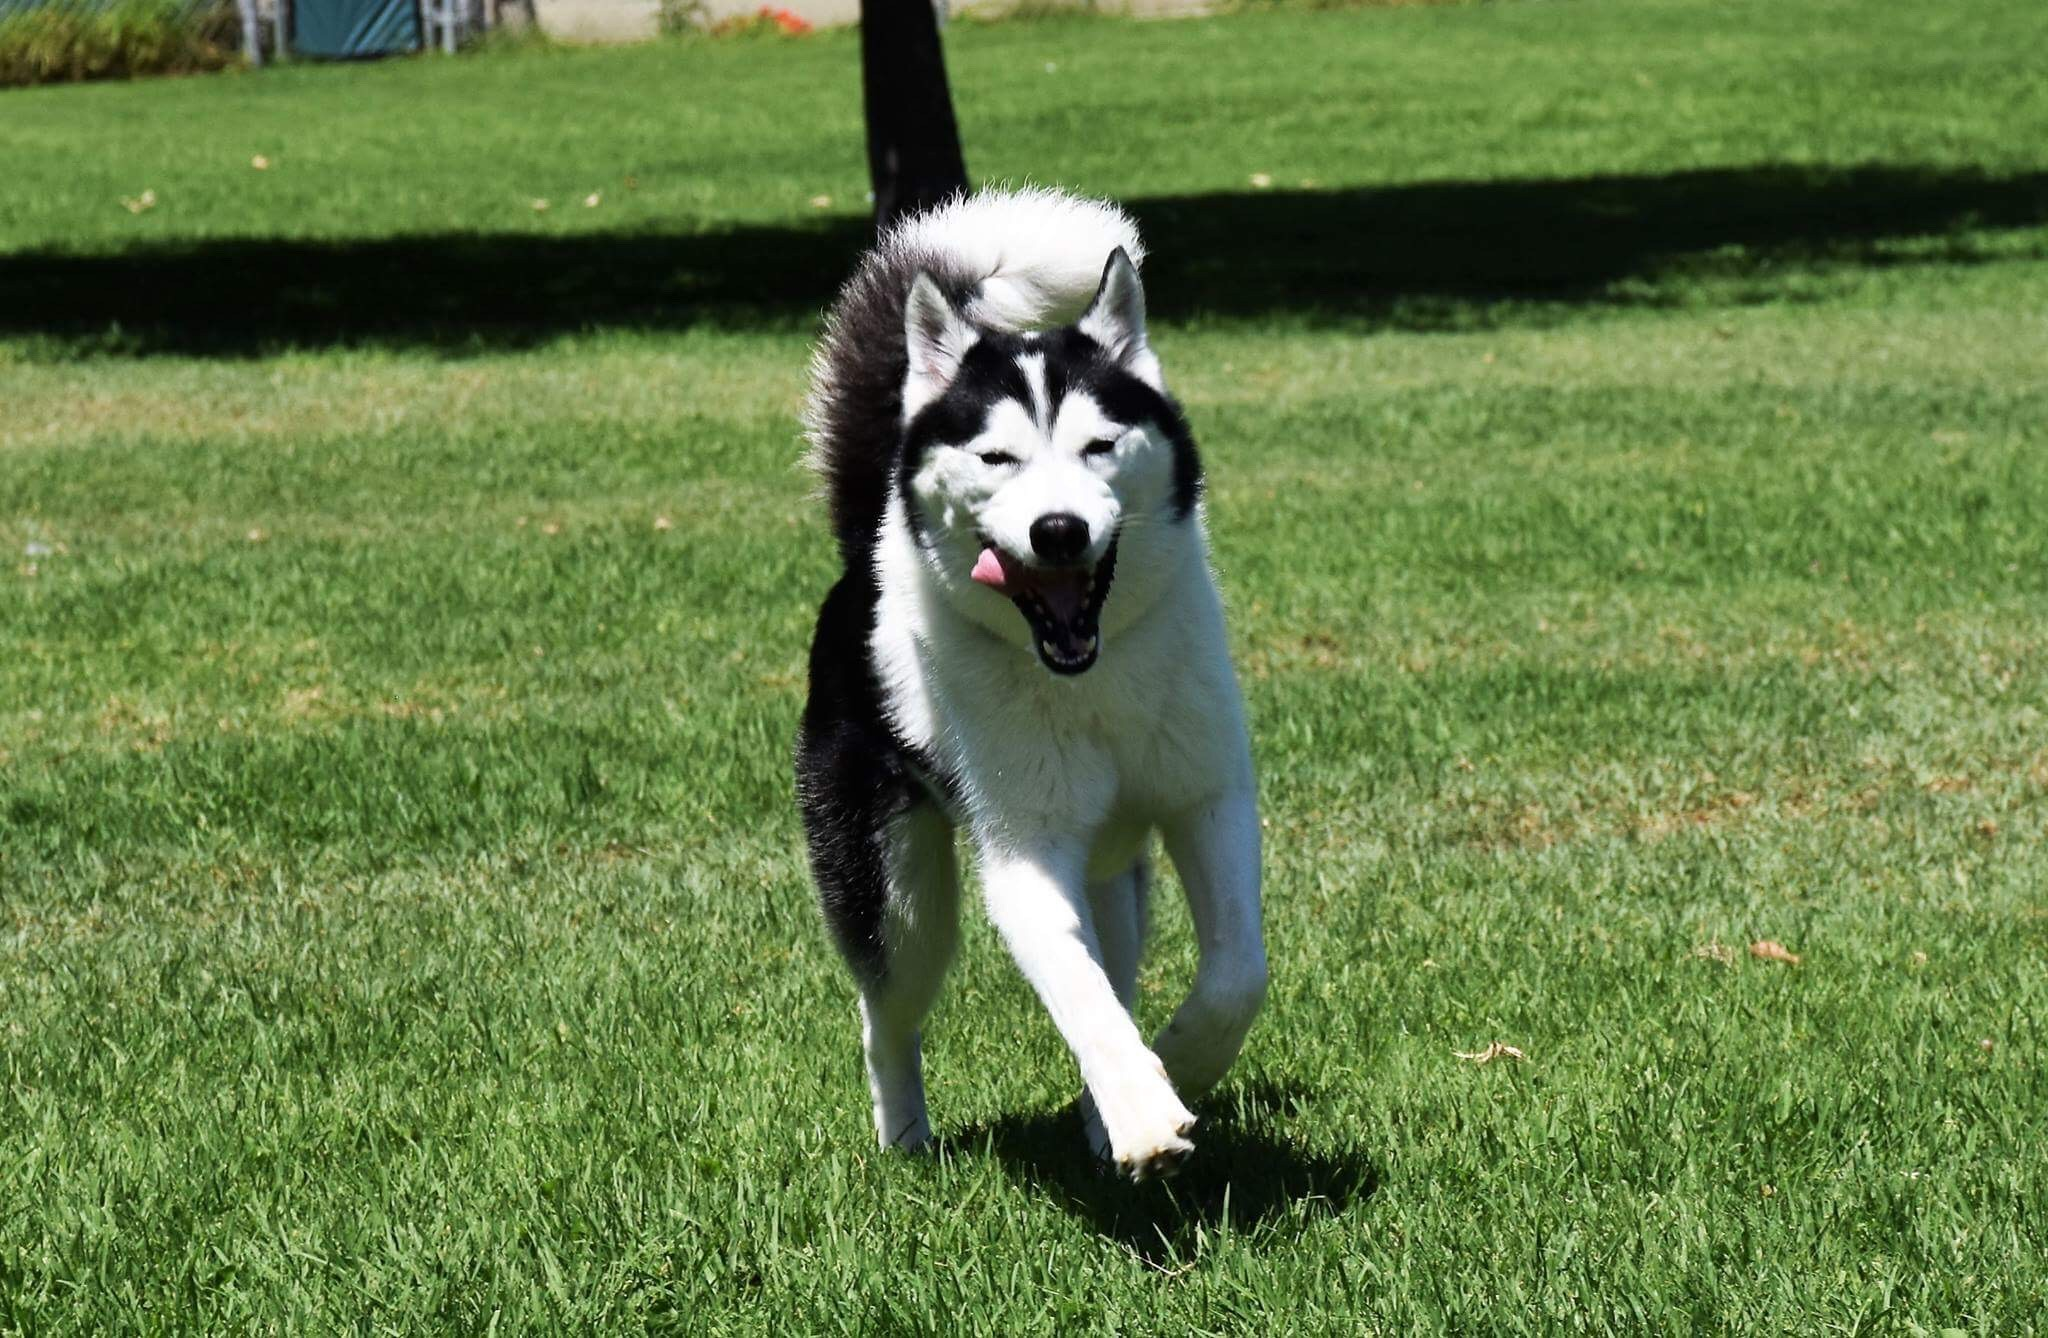 Husky puppies for sale yucca valley - Husky Puppies For Sale Yucca Valley 34